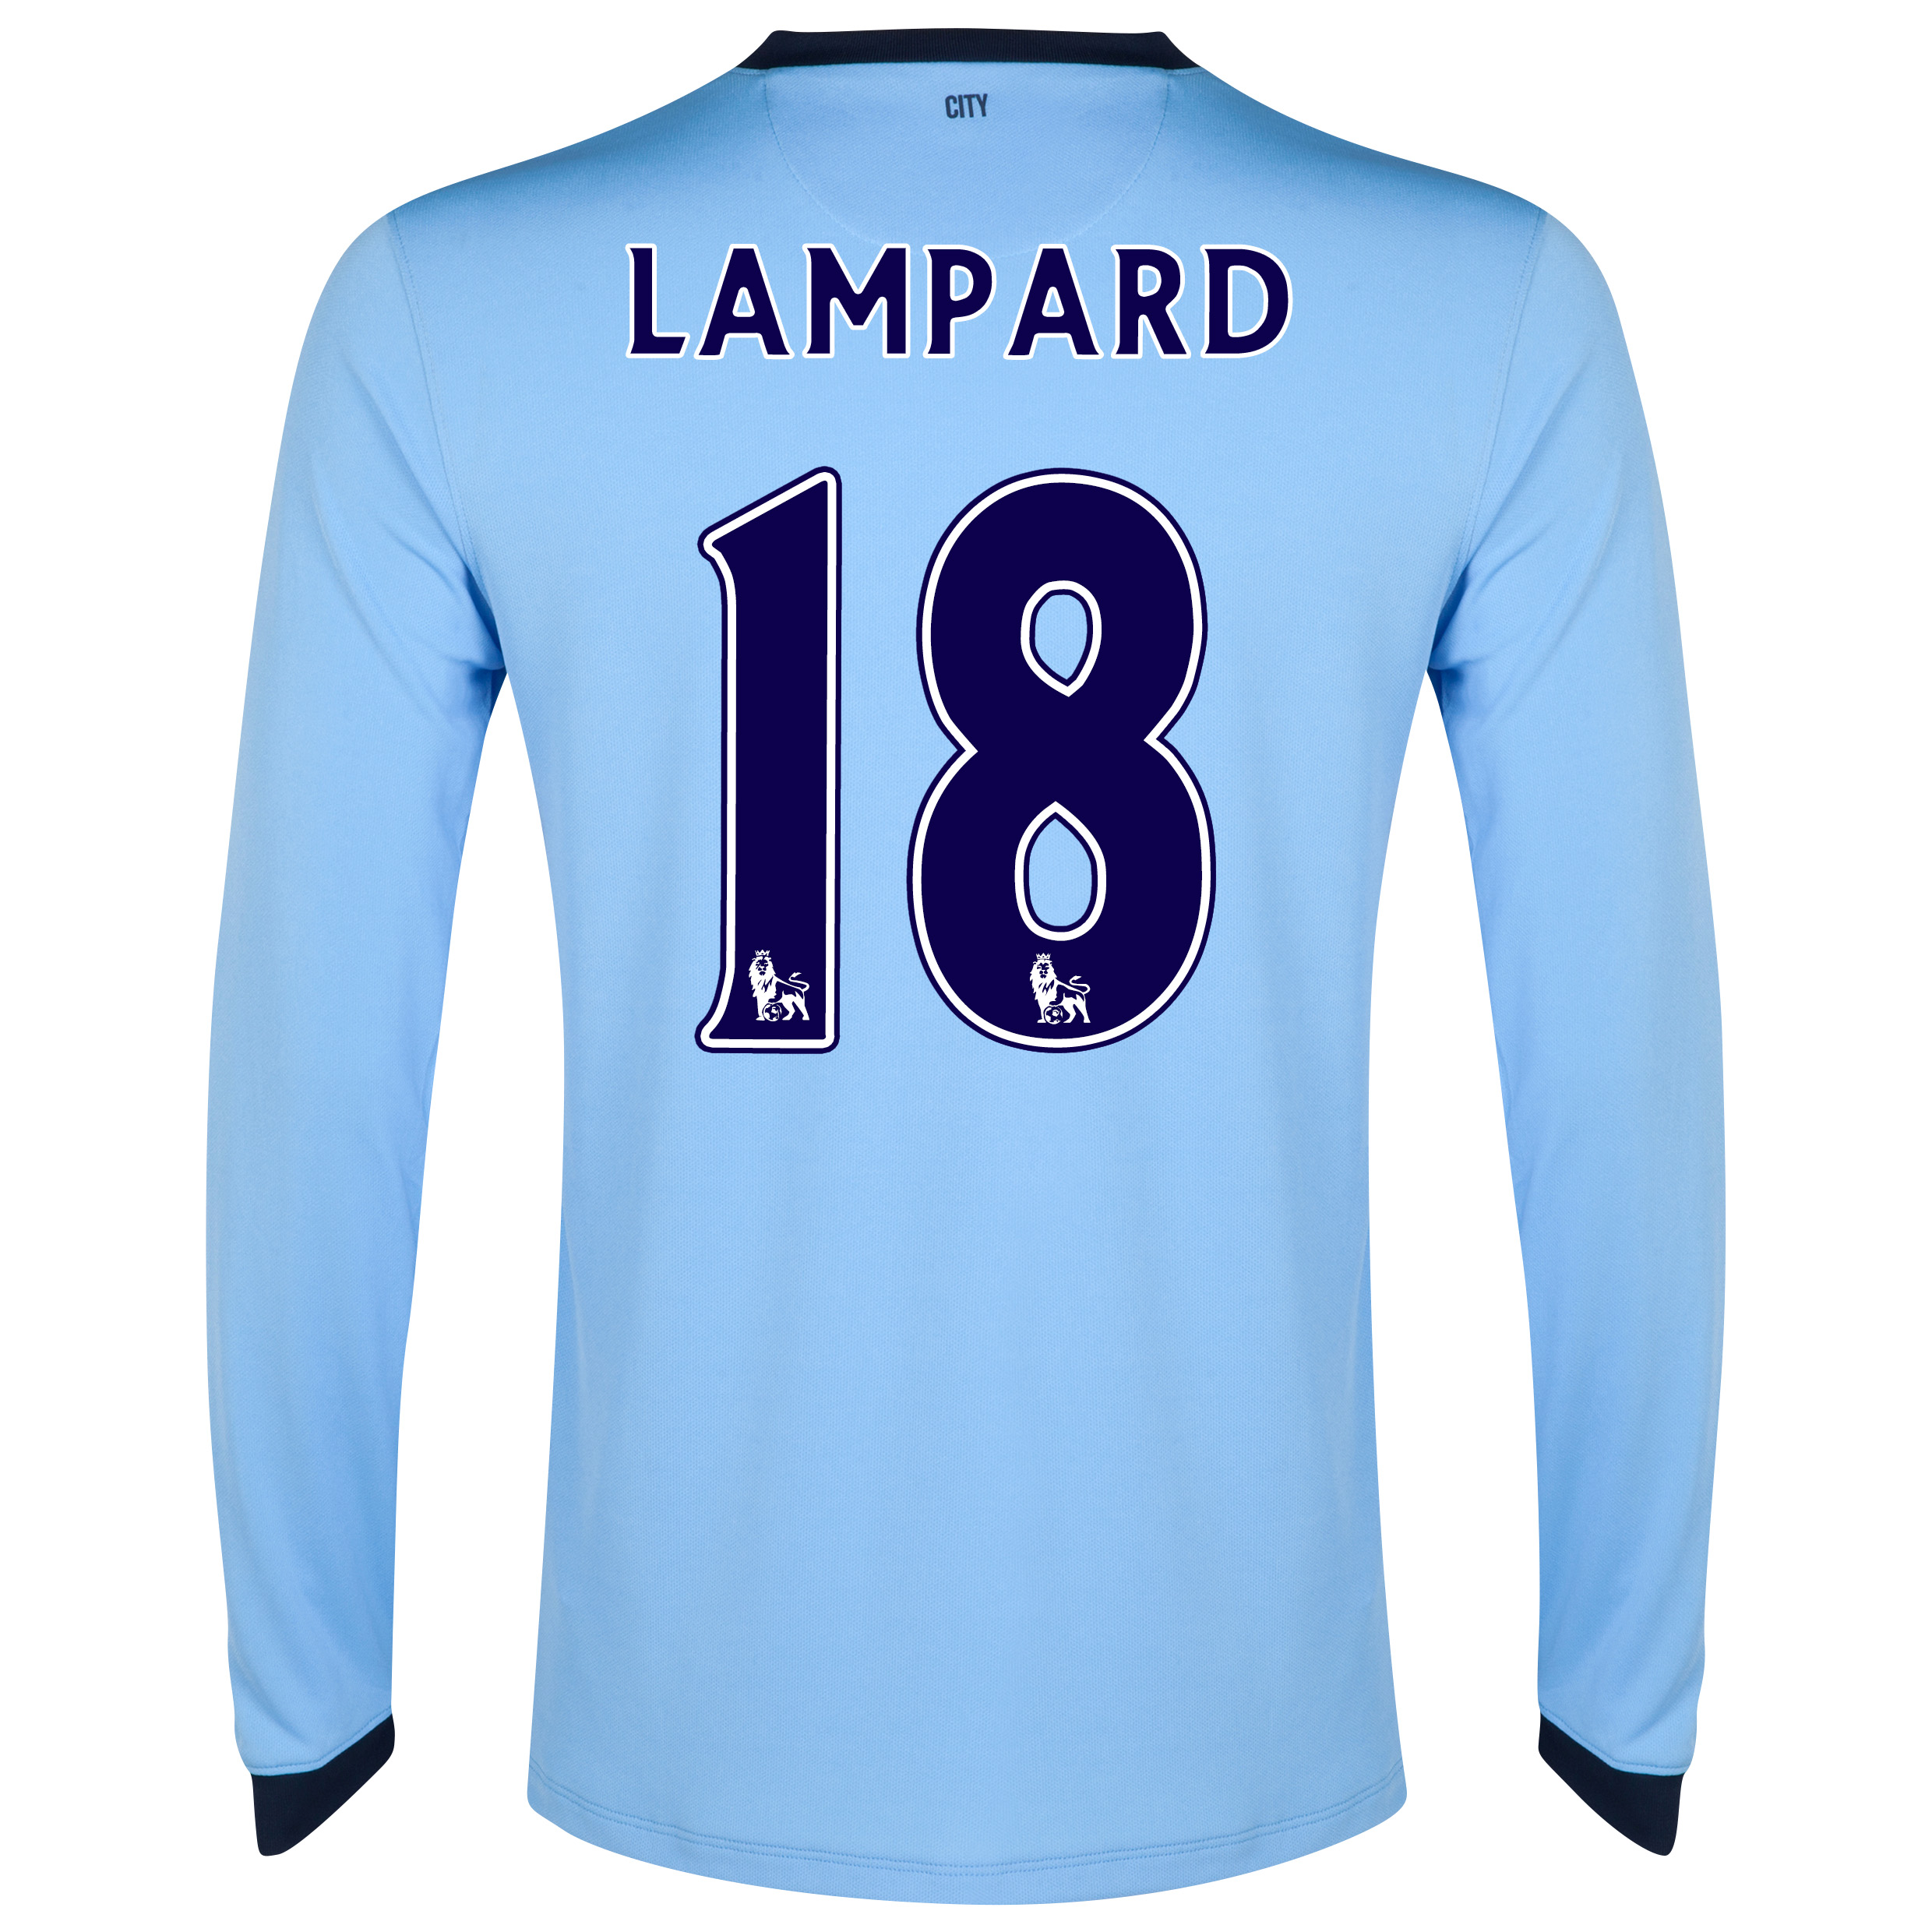 Manchester City Home Shirt 2014/15 - Long Sleeve - Kids Sky Blue with Lampard 18 printing